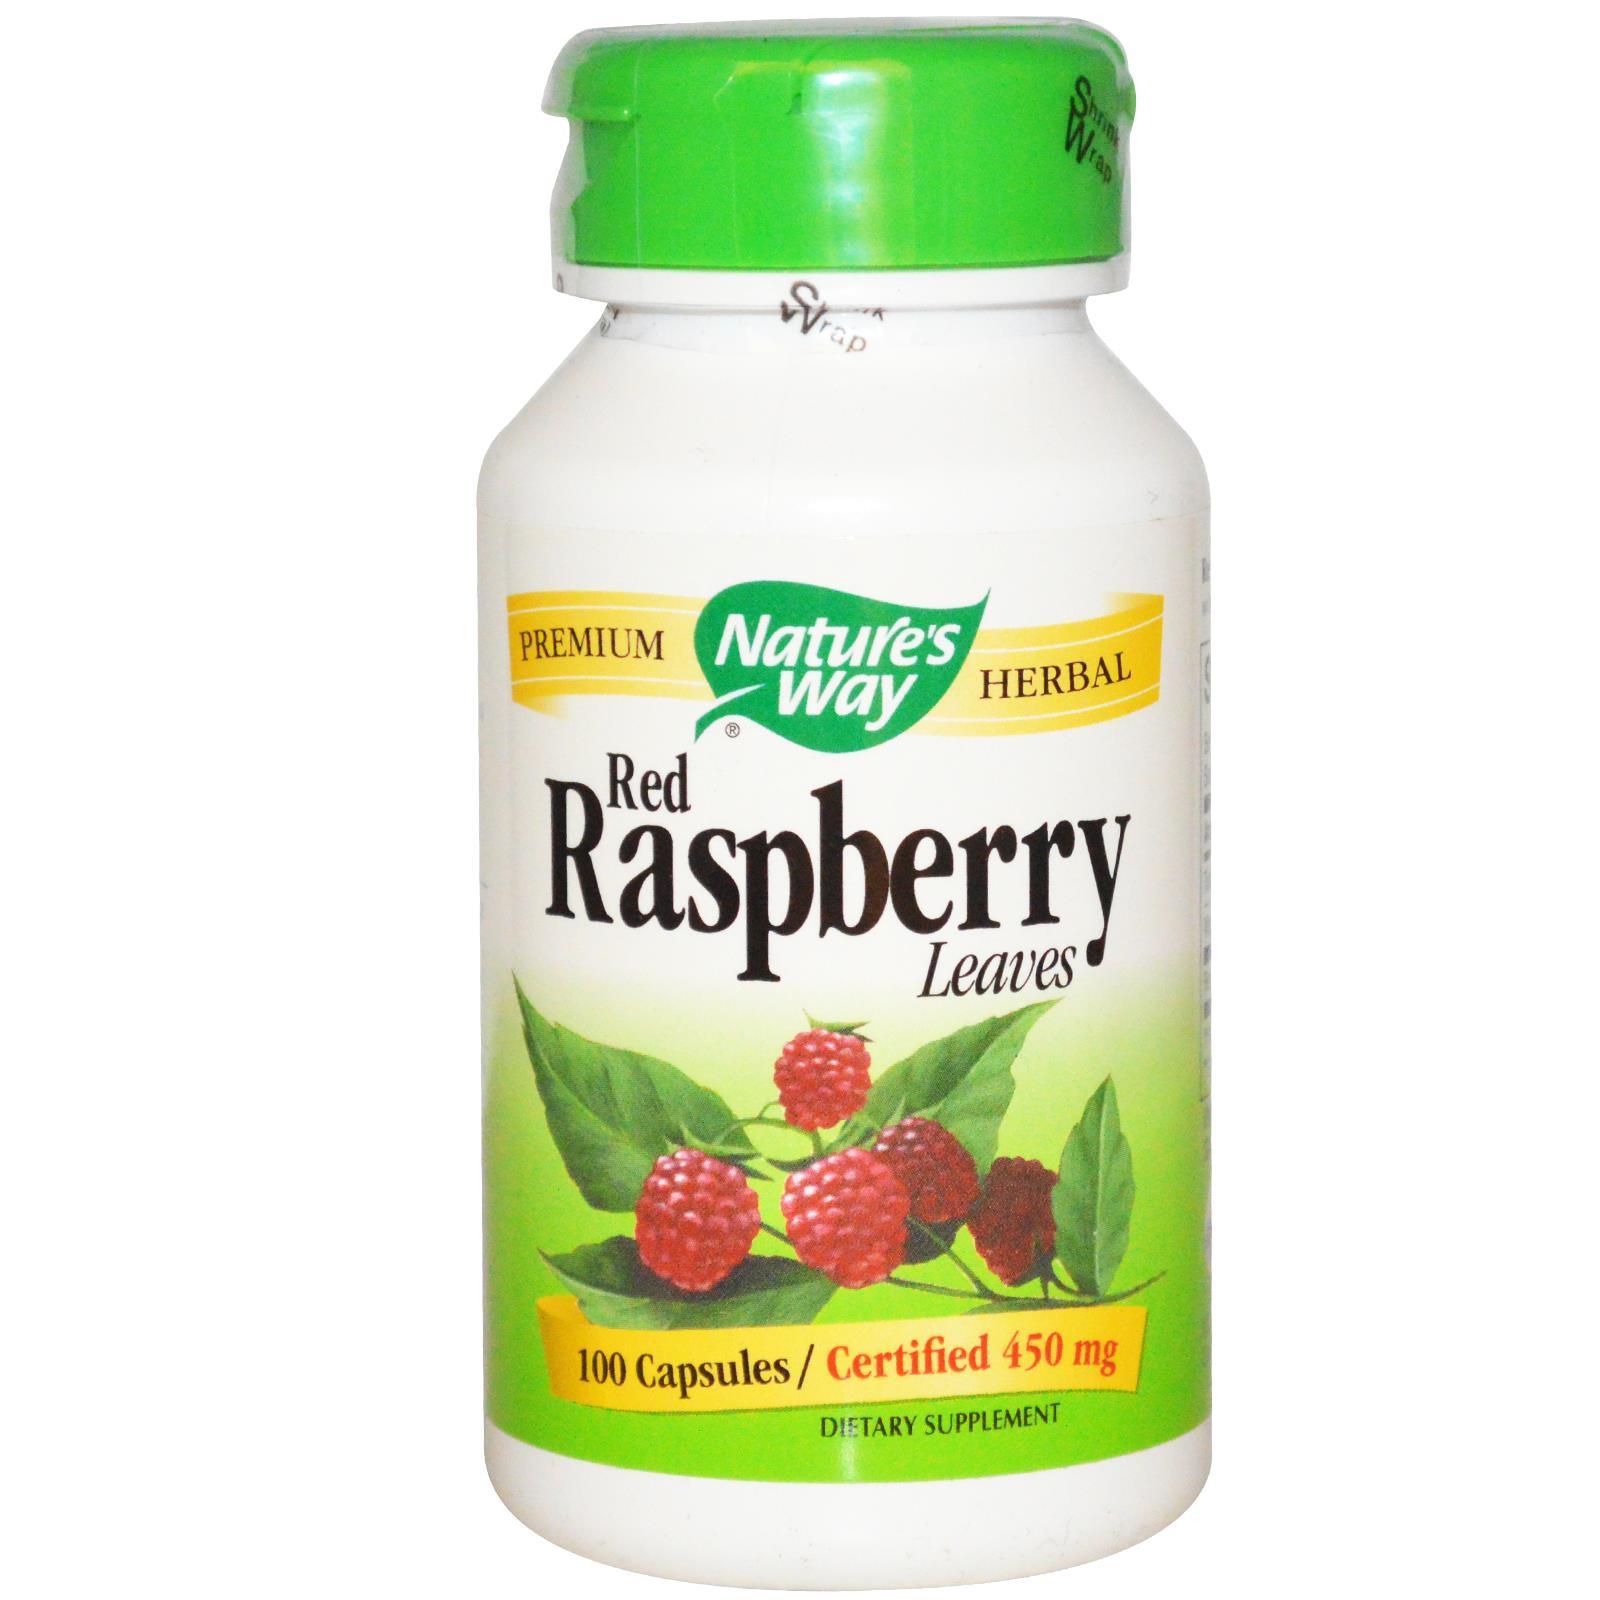 A bottle of Nature's Way Red Raspberry Leaf capsules